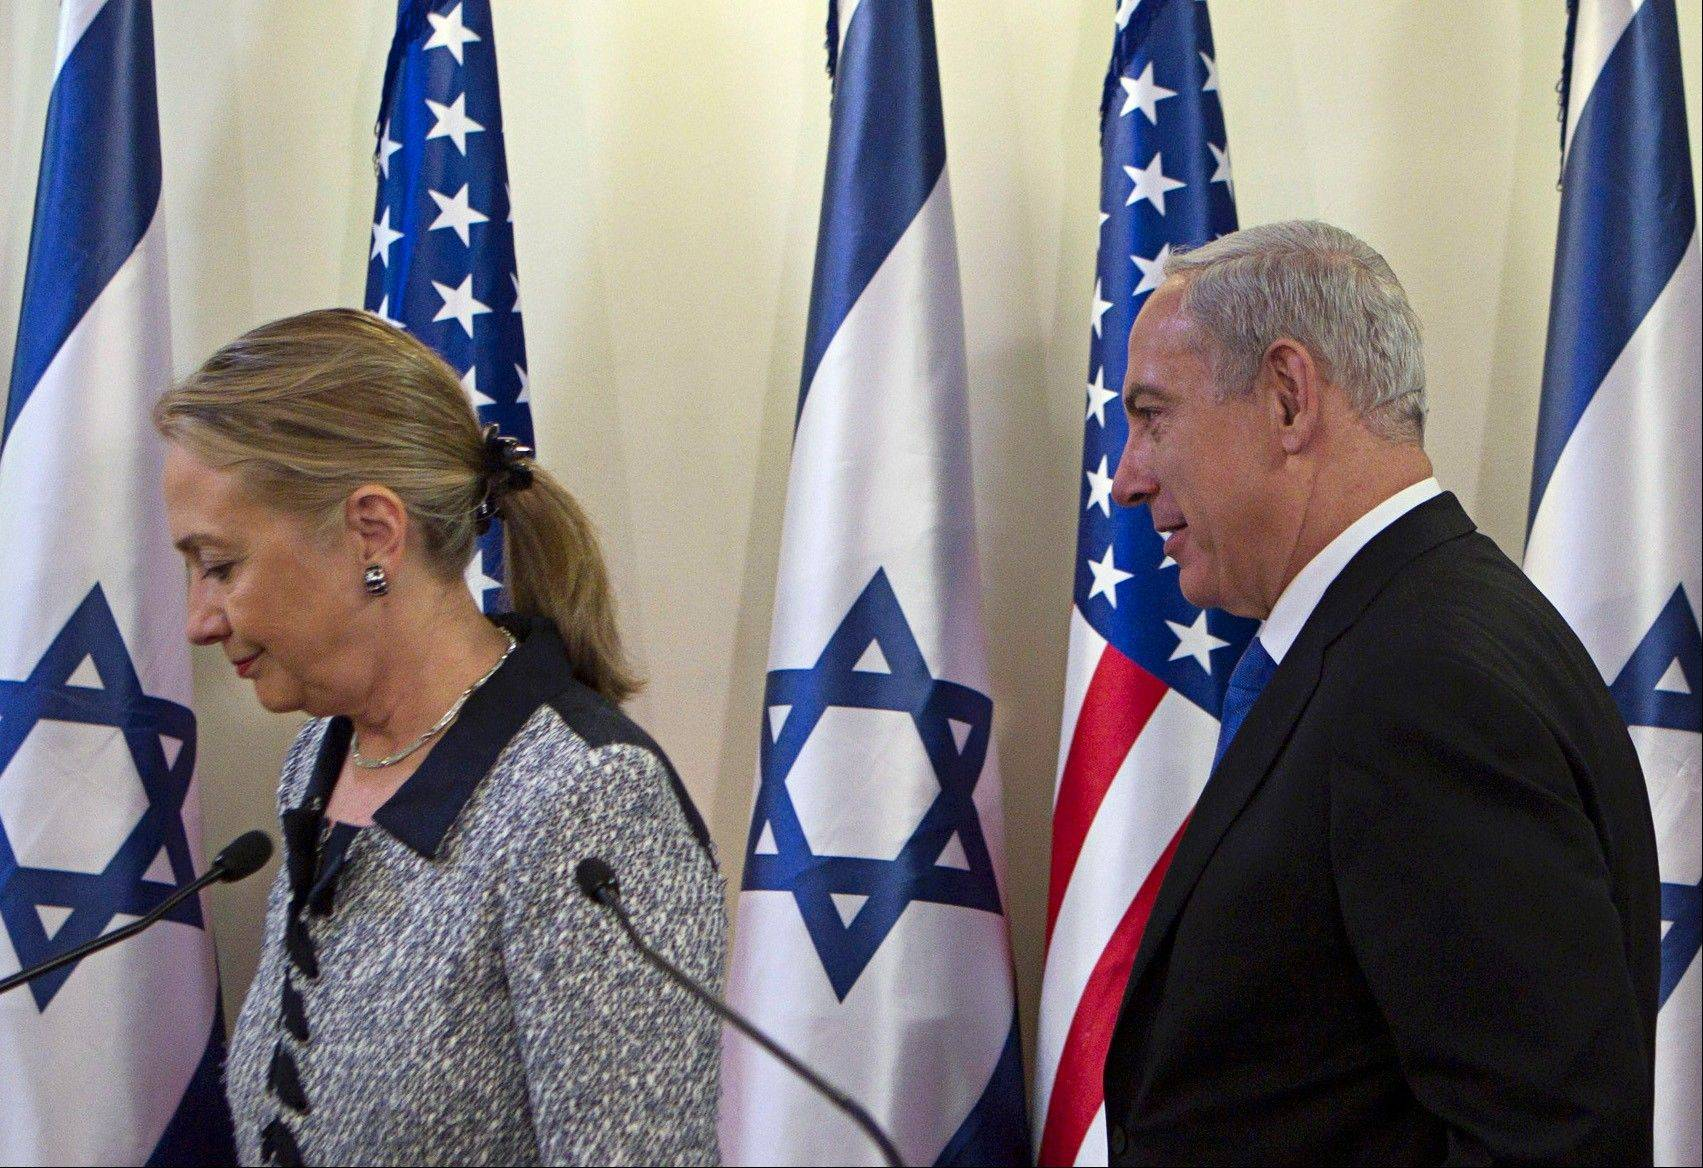 Israel's Prime Minister Benjamin Netanyahu, right, and U.S. Secretary of State Hillary Rodham Clinton leave after delivering joint statements in Jerusalem Tuesday. A diplomatic push to end Israel's nearly weeklong offensive in the Gaza Strip gained momentum Tuesday.